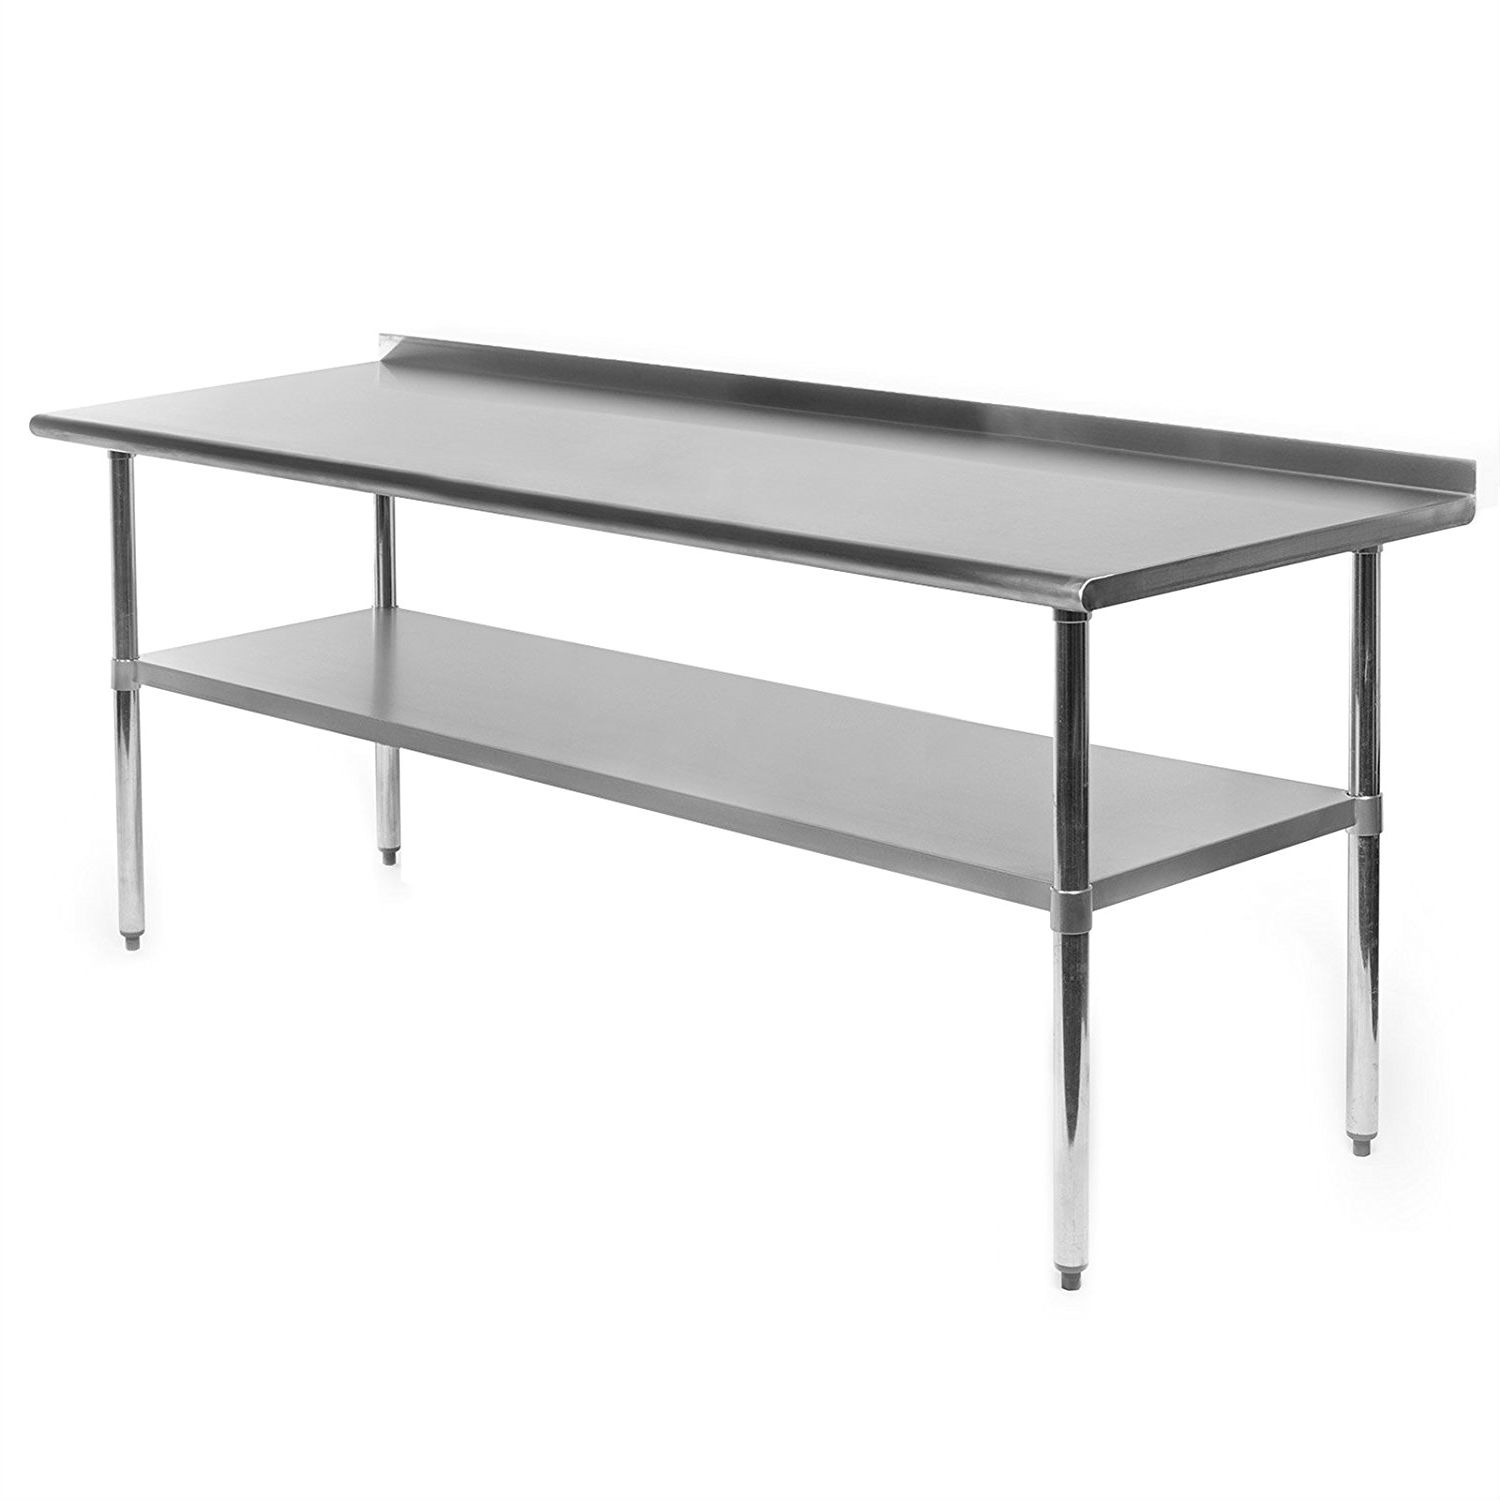 amazon bench multi dp use work com amerihome table outdoor tables garden steel stainless